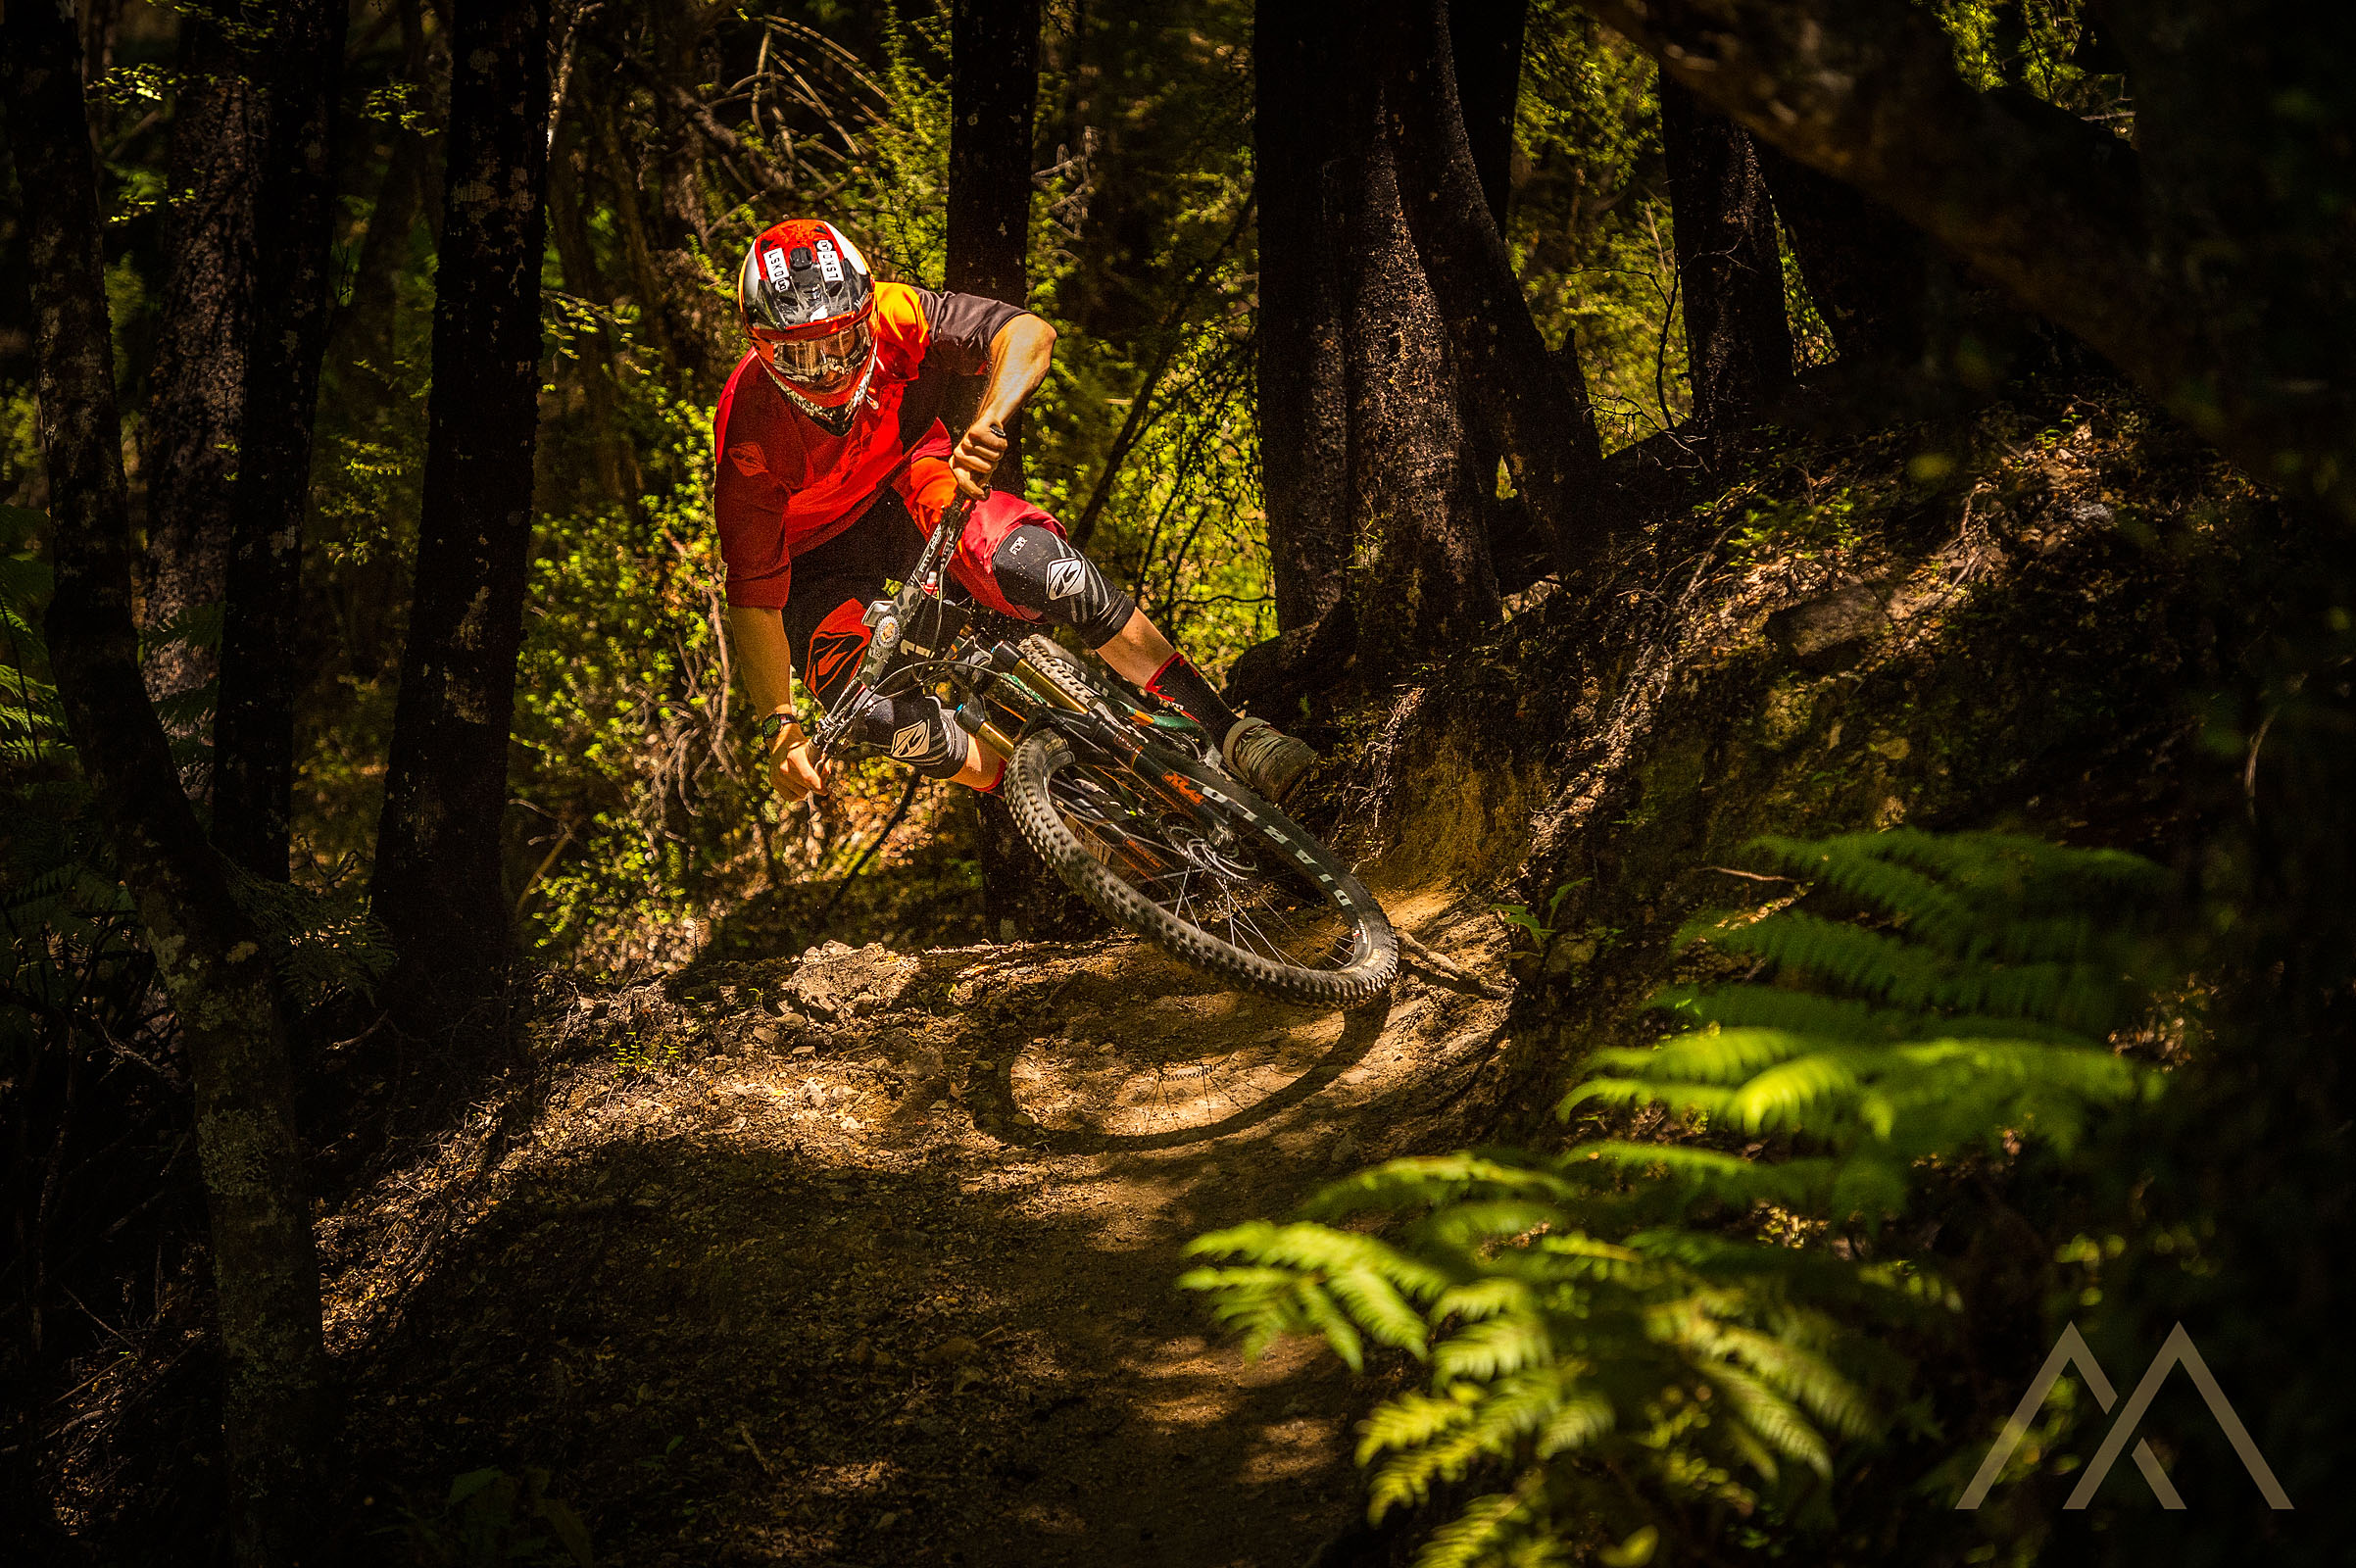 Sam Blenkinsop took the win in a time of 25 mins and 35 seconds, 19 seconds ahead of Keegan.Image: Mark Bridgwater